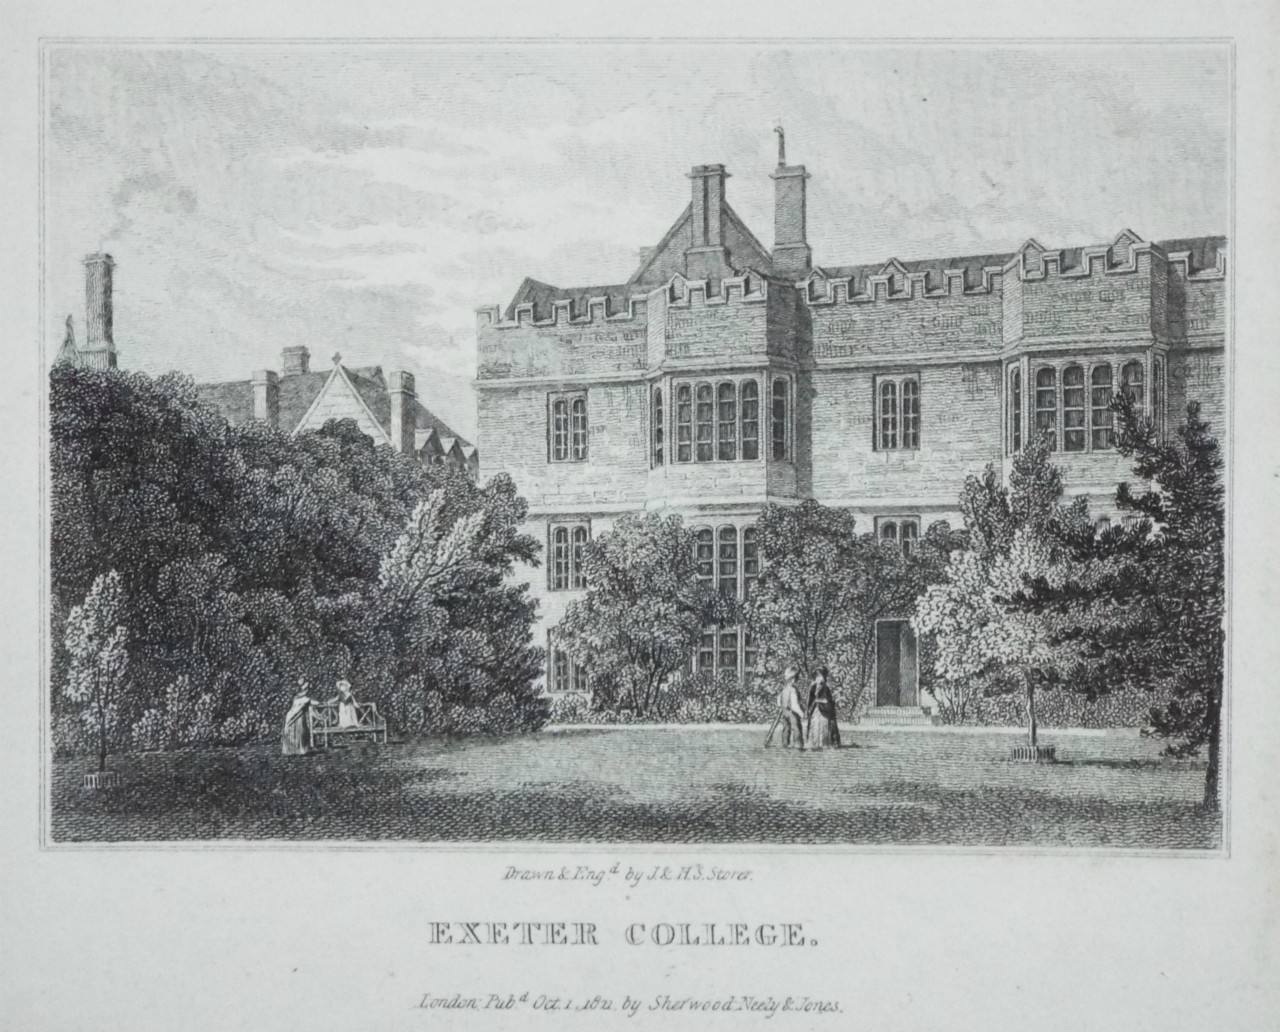 Print - Exeter College. - Storer